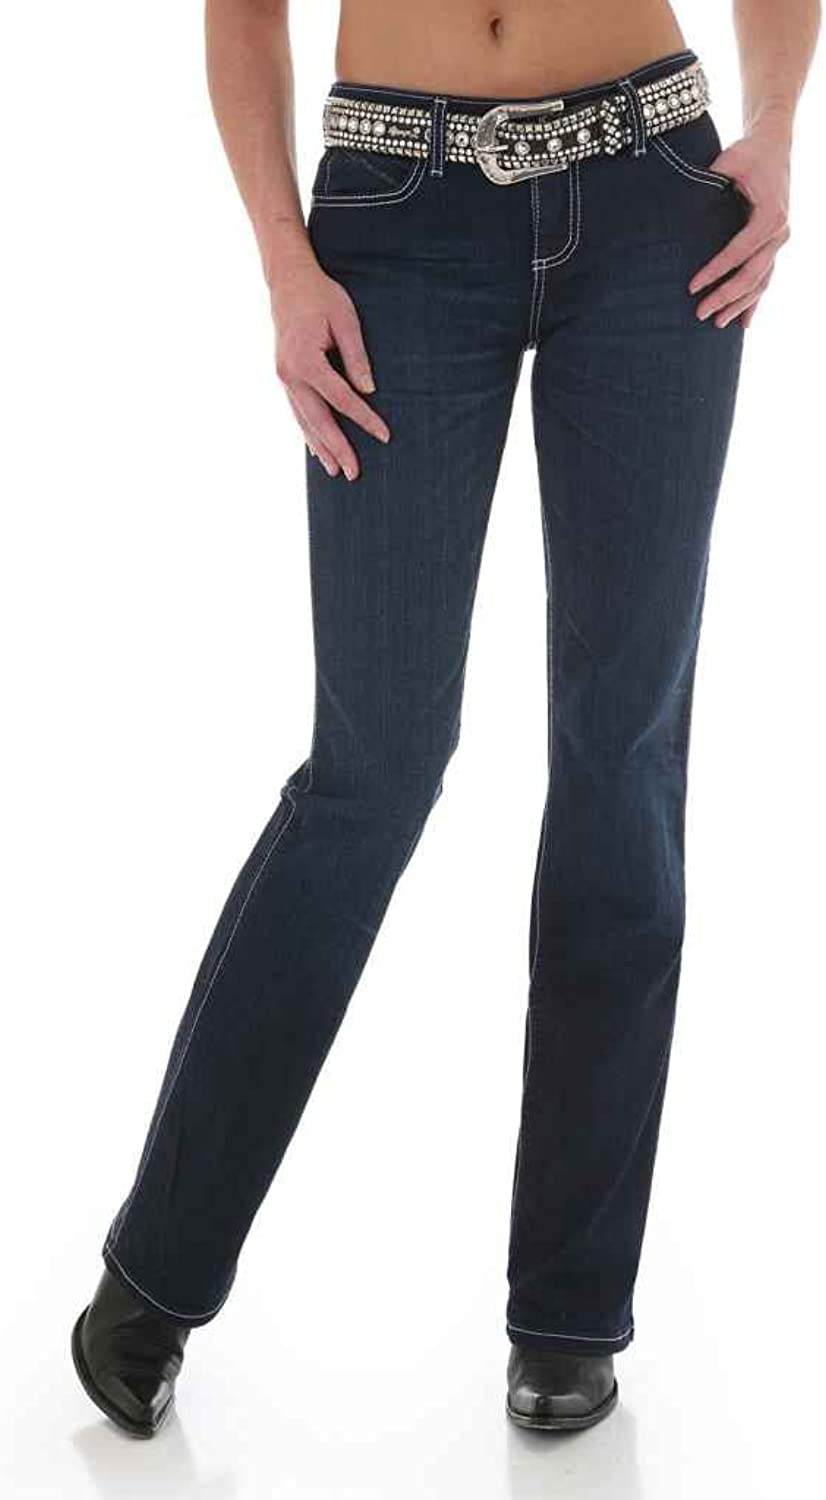 Wrangler Women's Q Dark Wash Ultimate Riding With Booty Up Technology Jeans